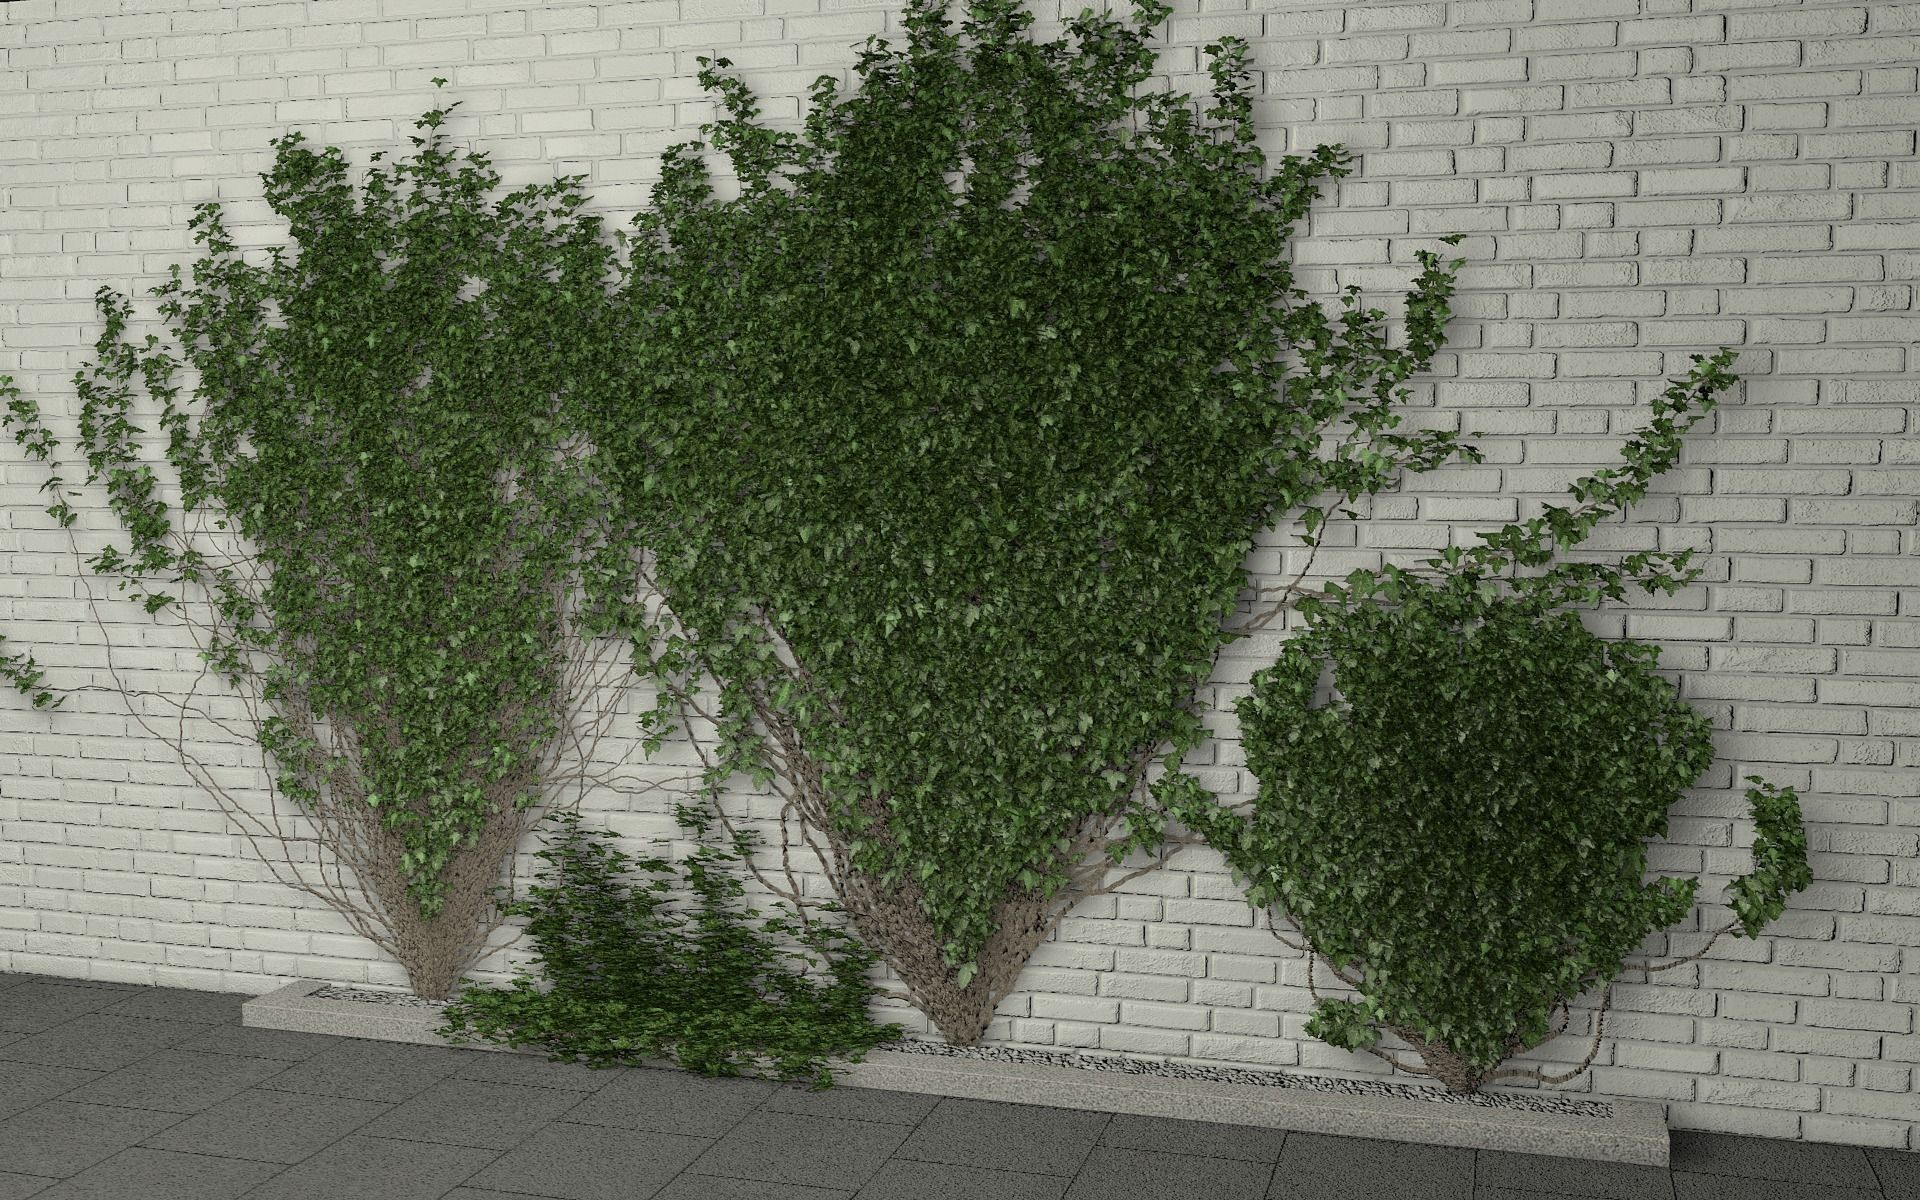 ivy wall 3D Model C4D | CGTrader.com